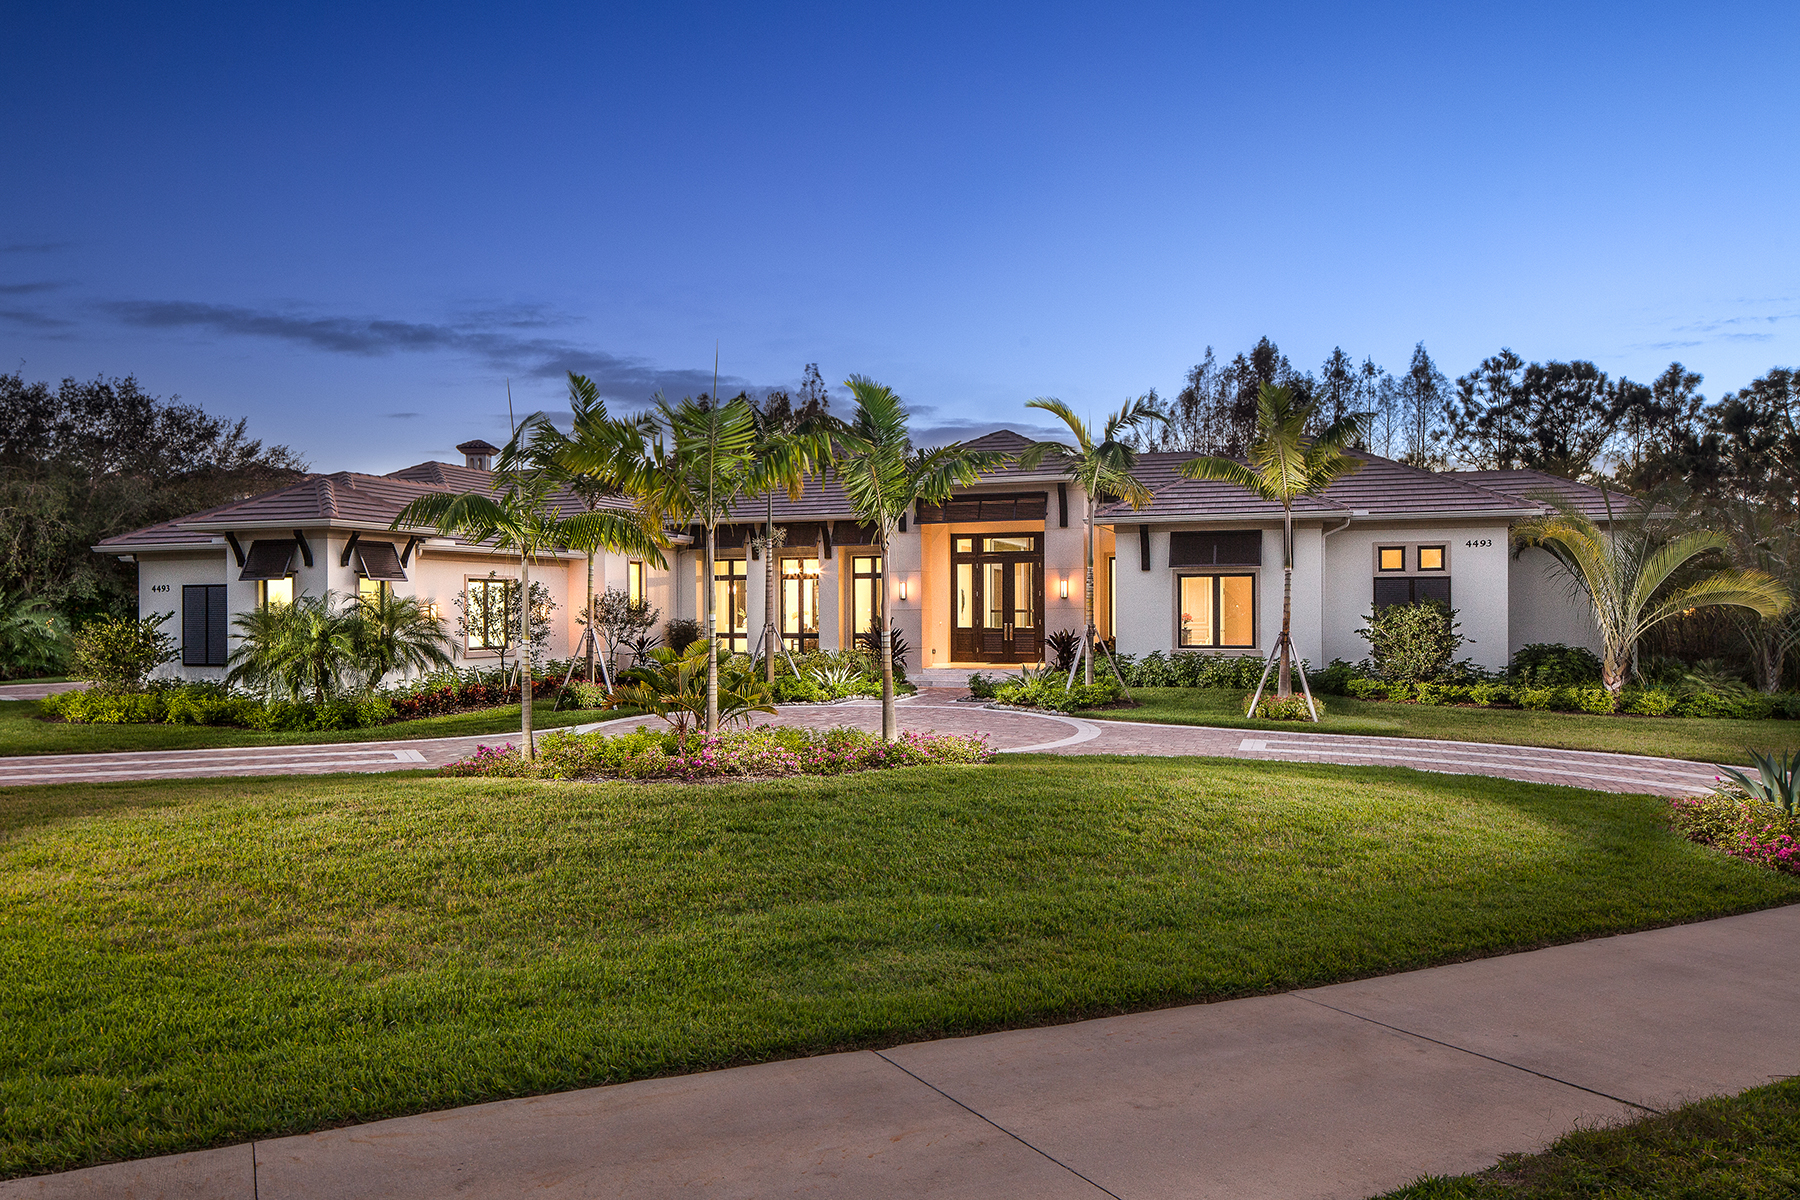 Single Family Home for Sale at QUAIL WEST 4493 Wayside Dr, Naples, Florida 34119 United States